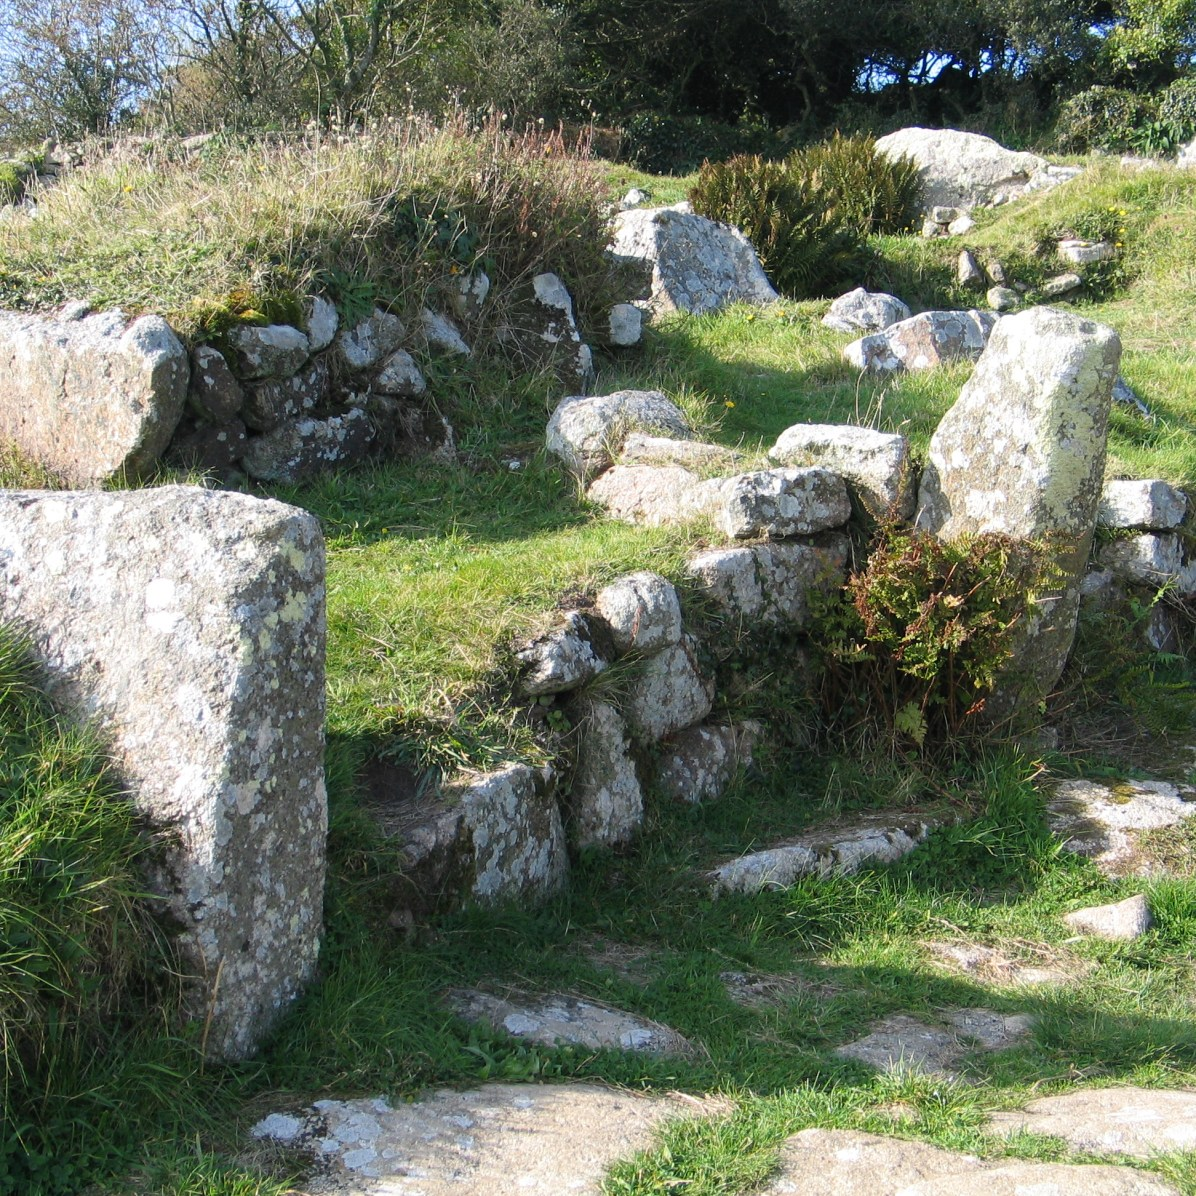 One of the best preserved ancient settlements